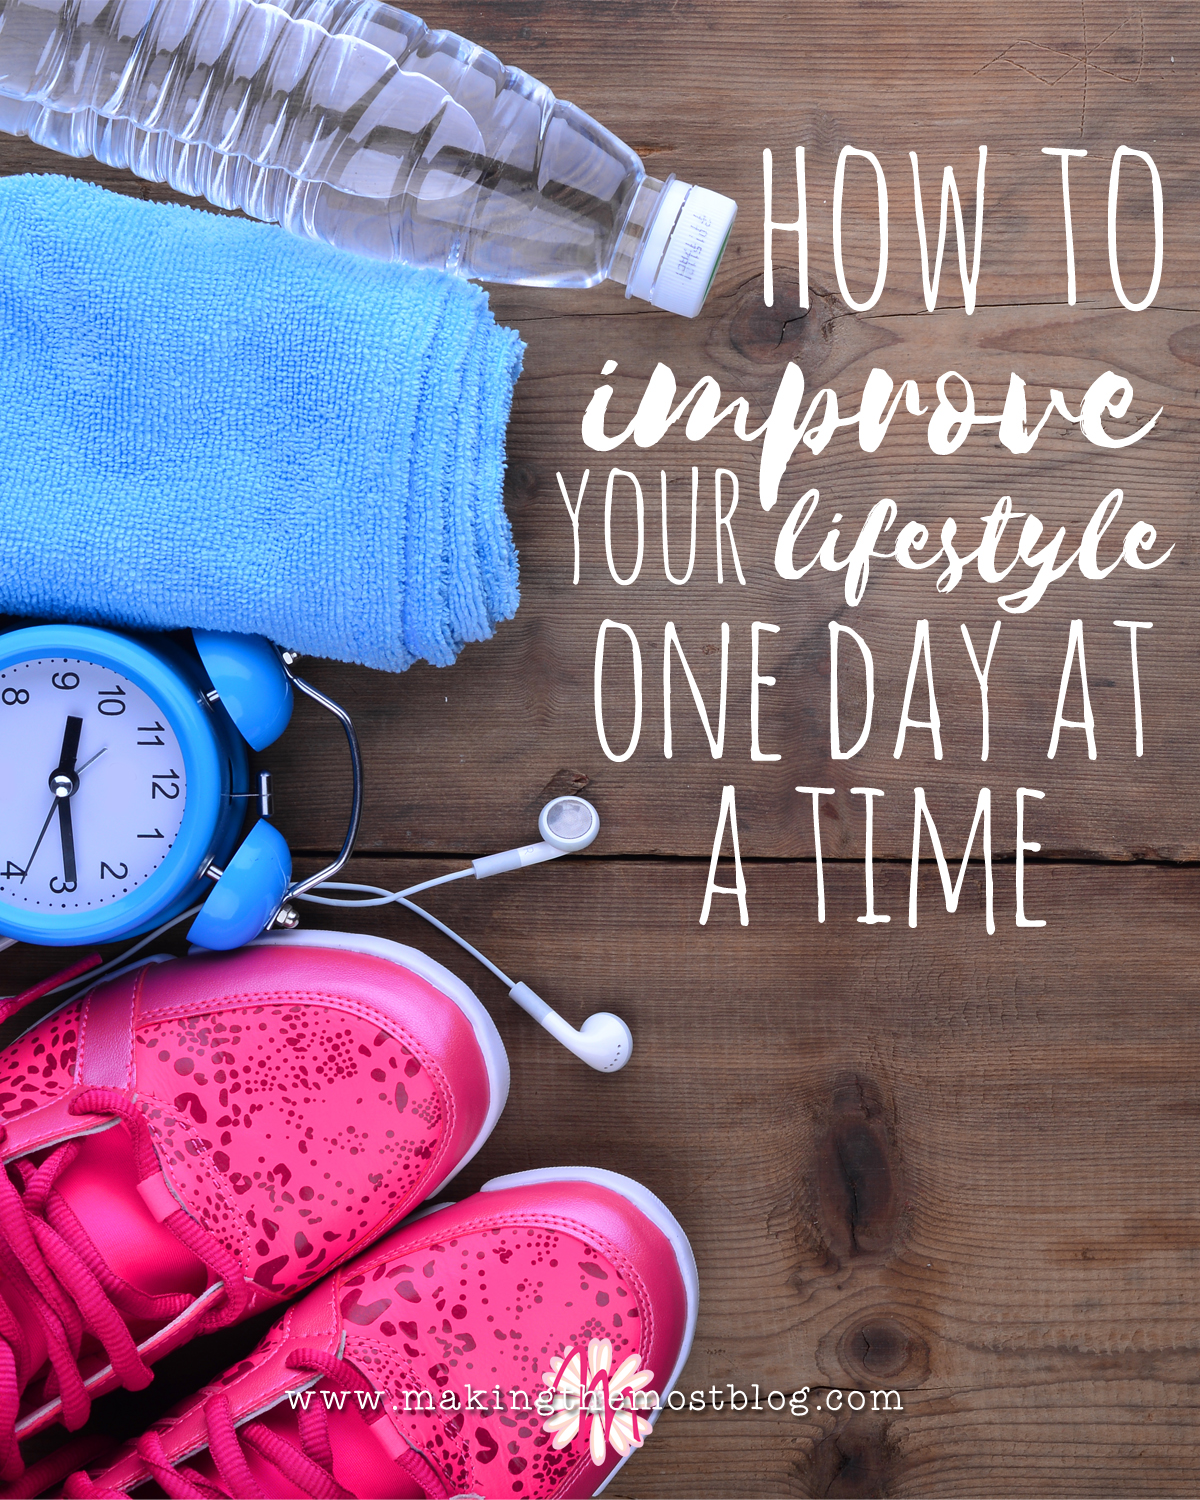 How To Improve Your Lifestyle One Day At A Time